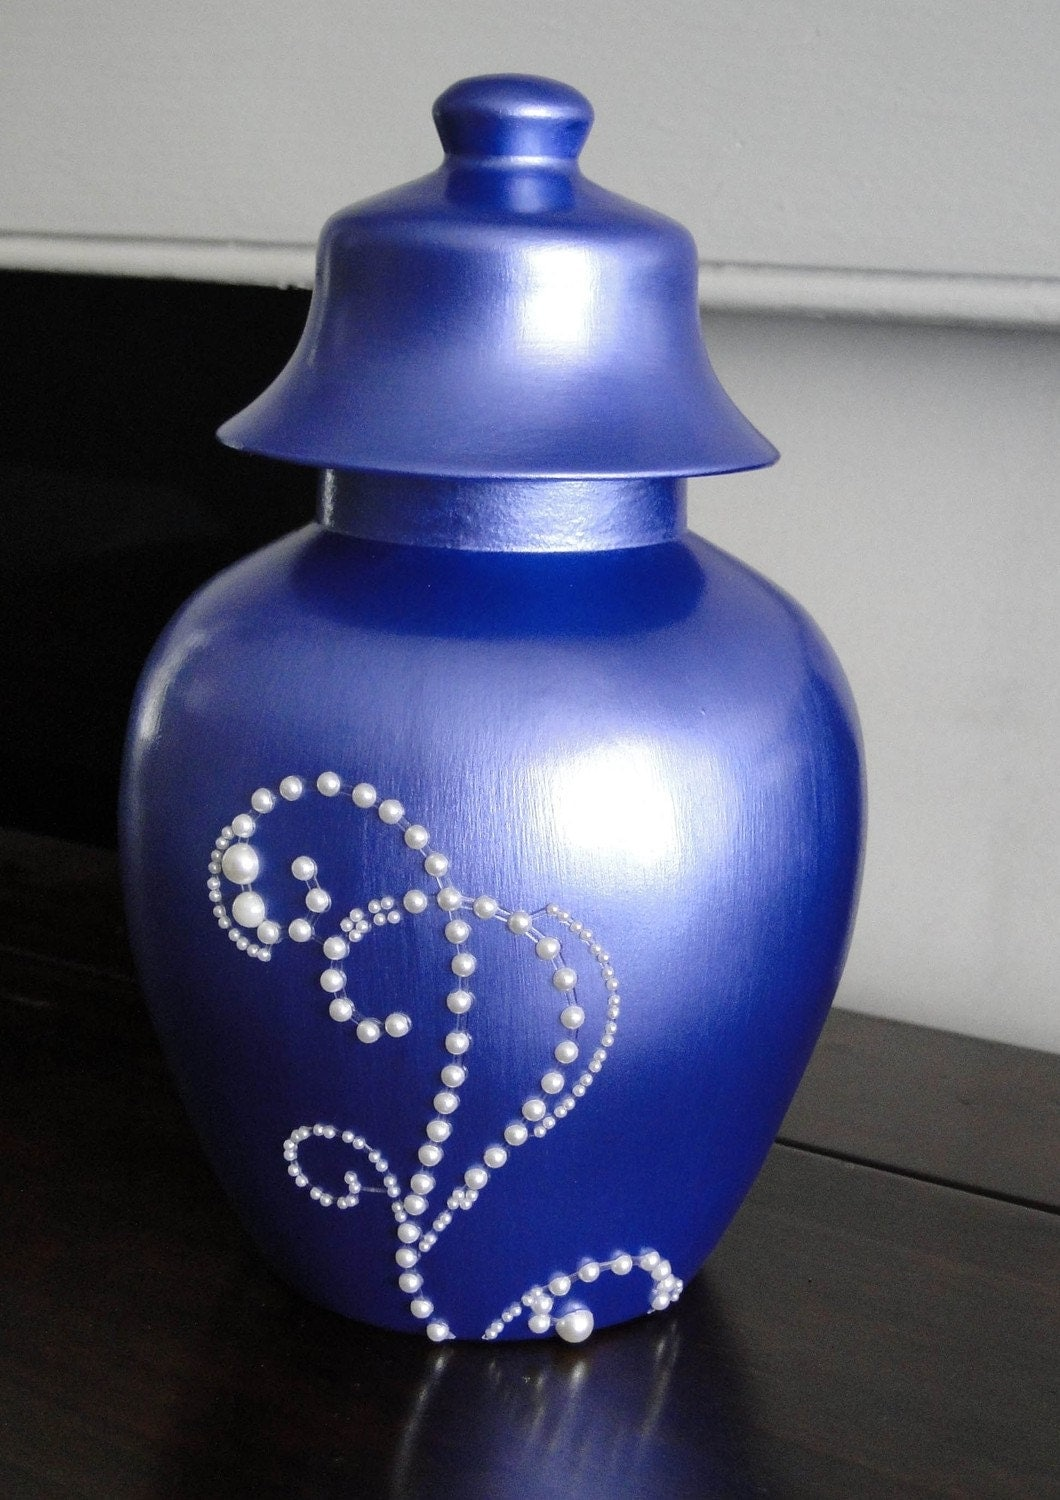 Italian Wedding Vase Ready to Break